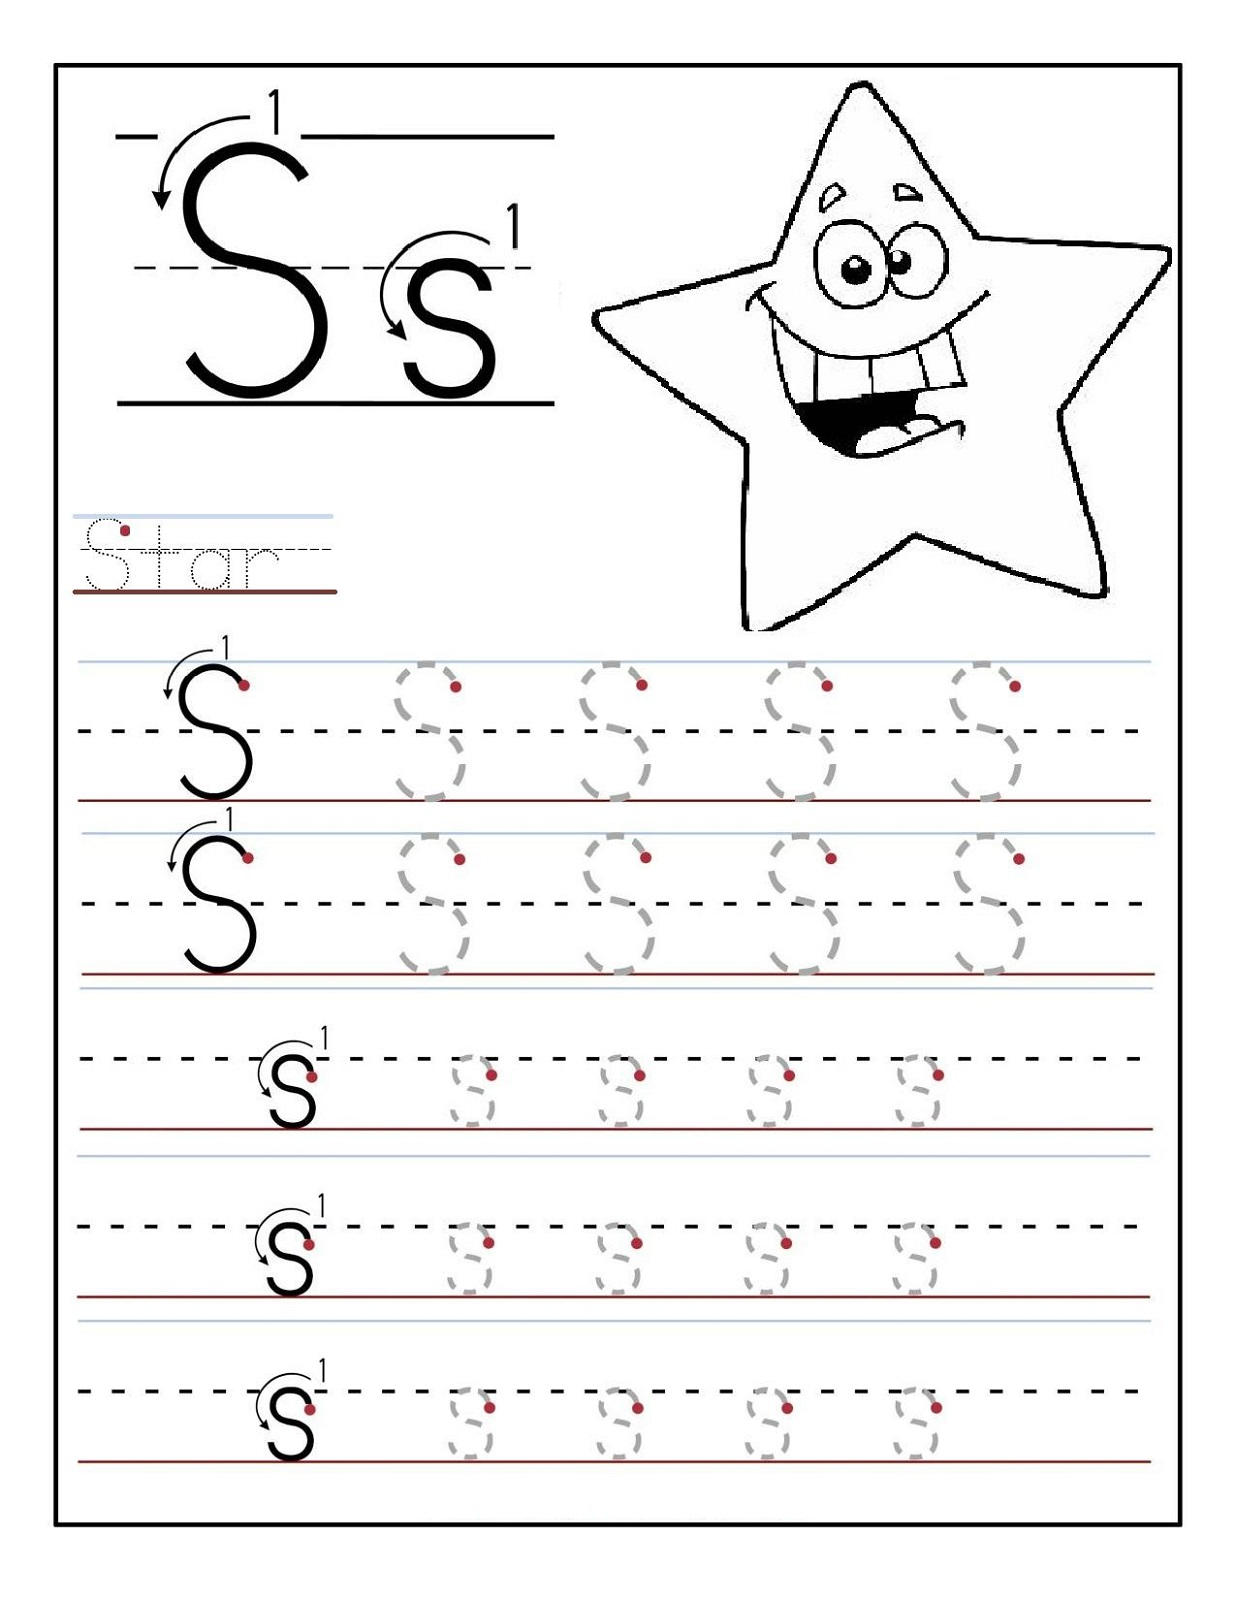 alphabet worksheets for preschoolers 5